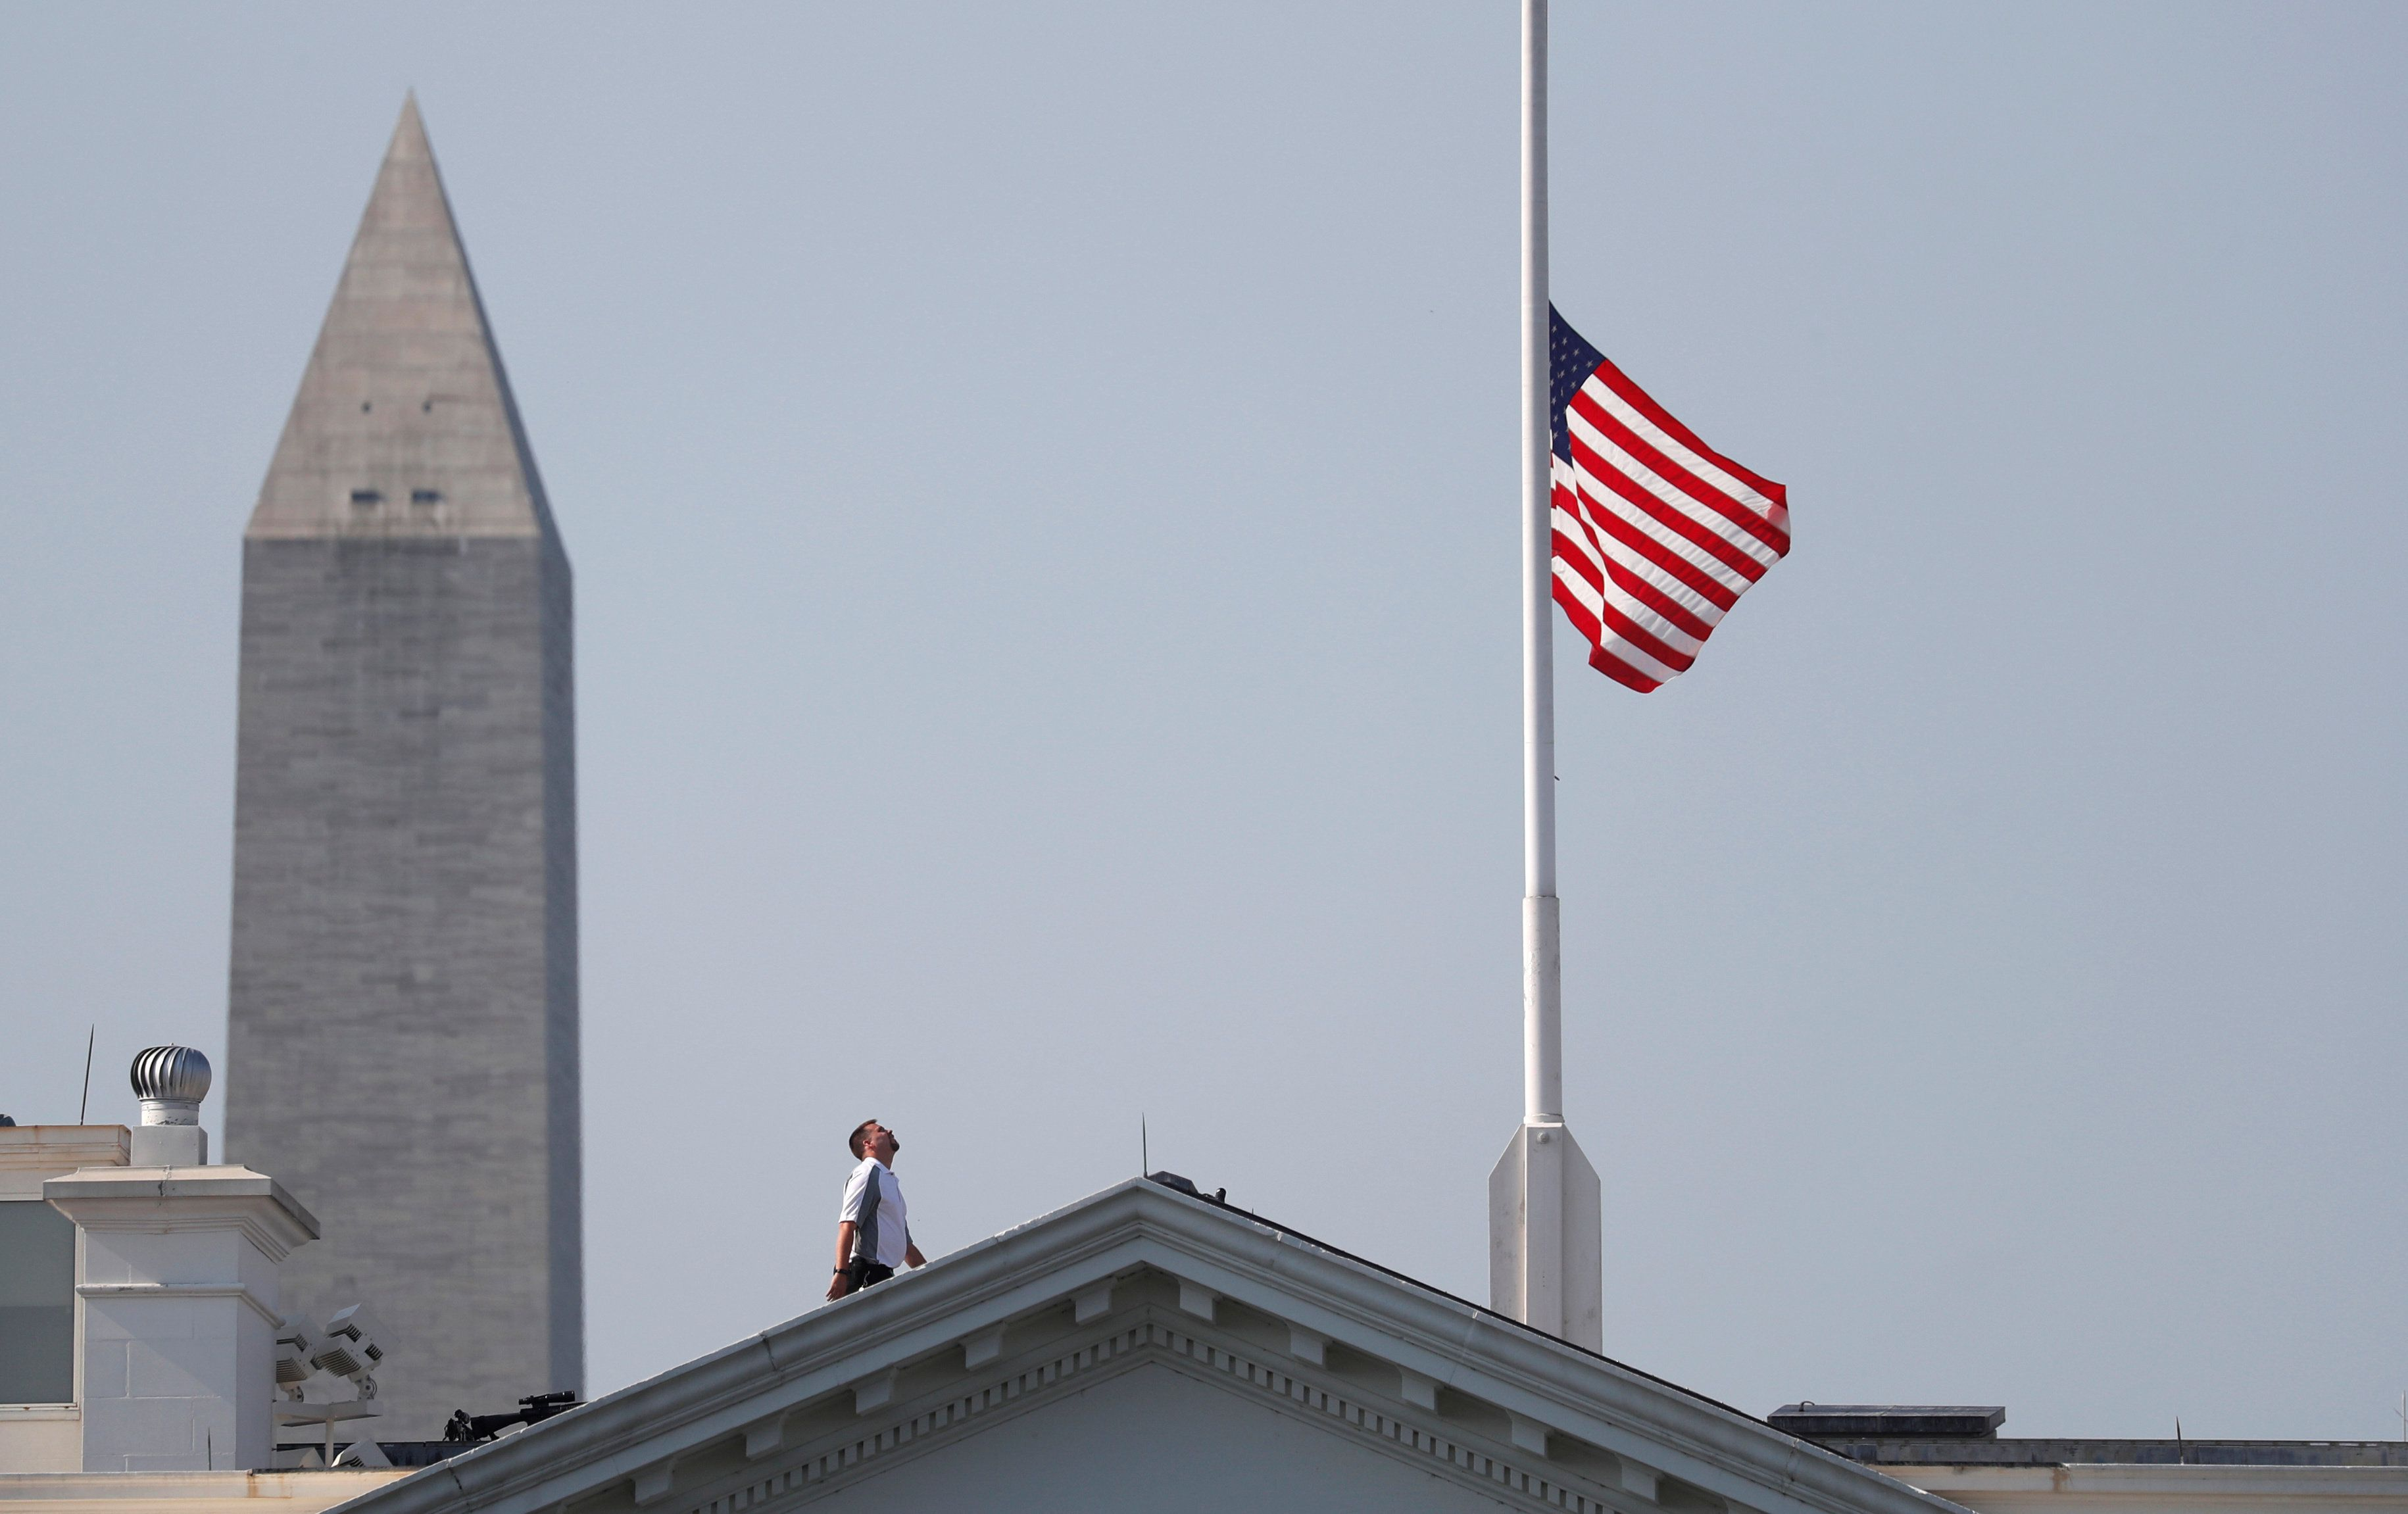 A worker looks up after lowering the flag over the White House in Washington to half-staff to honor victims of the shooting at the Capital Gazette Newspaper in Annapolis, Maryland, U.S., July 3, 2018.  REUTERS/Kevin Lamarque